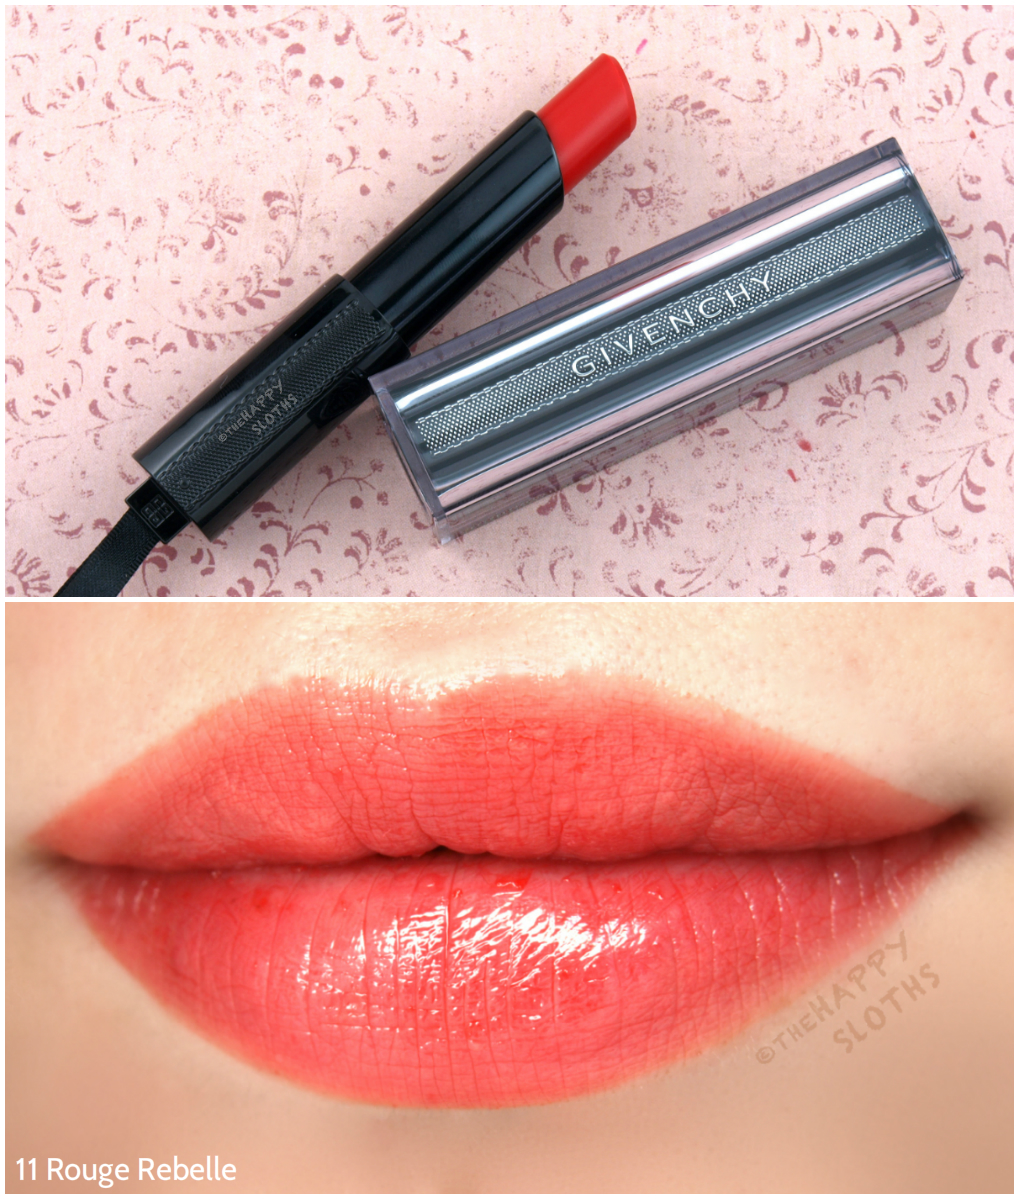 Givenchy Rouge Interdit Vinyl Color Enhancing Lipstick 11 Rouge Rebelle Review and Swatches